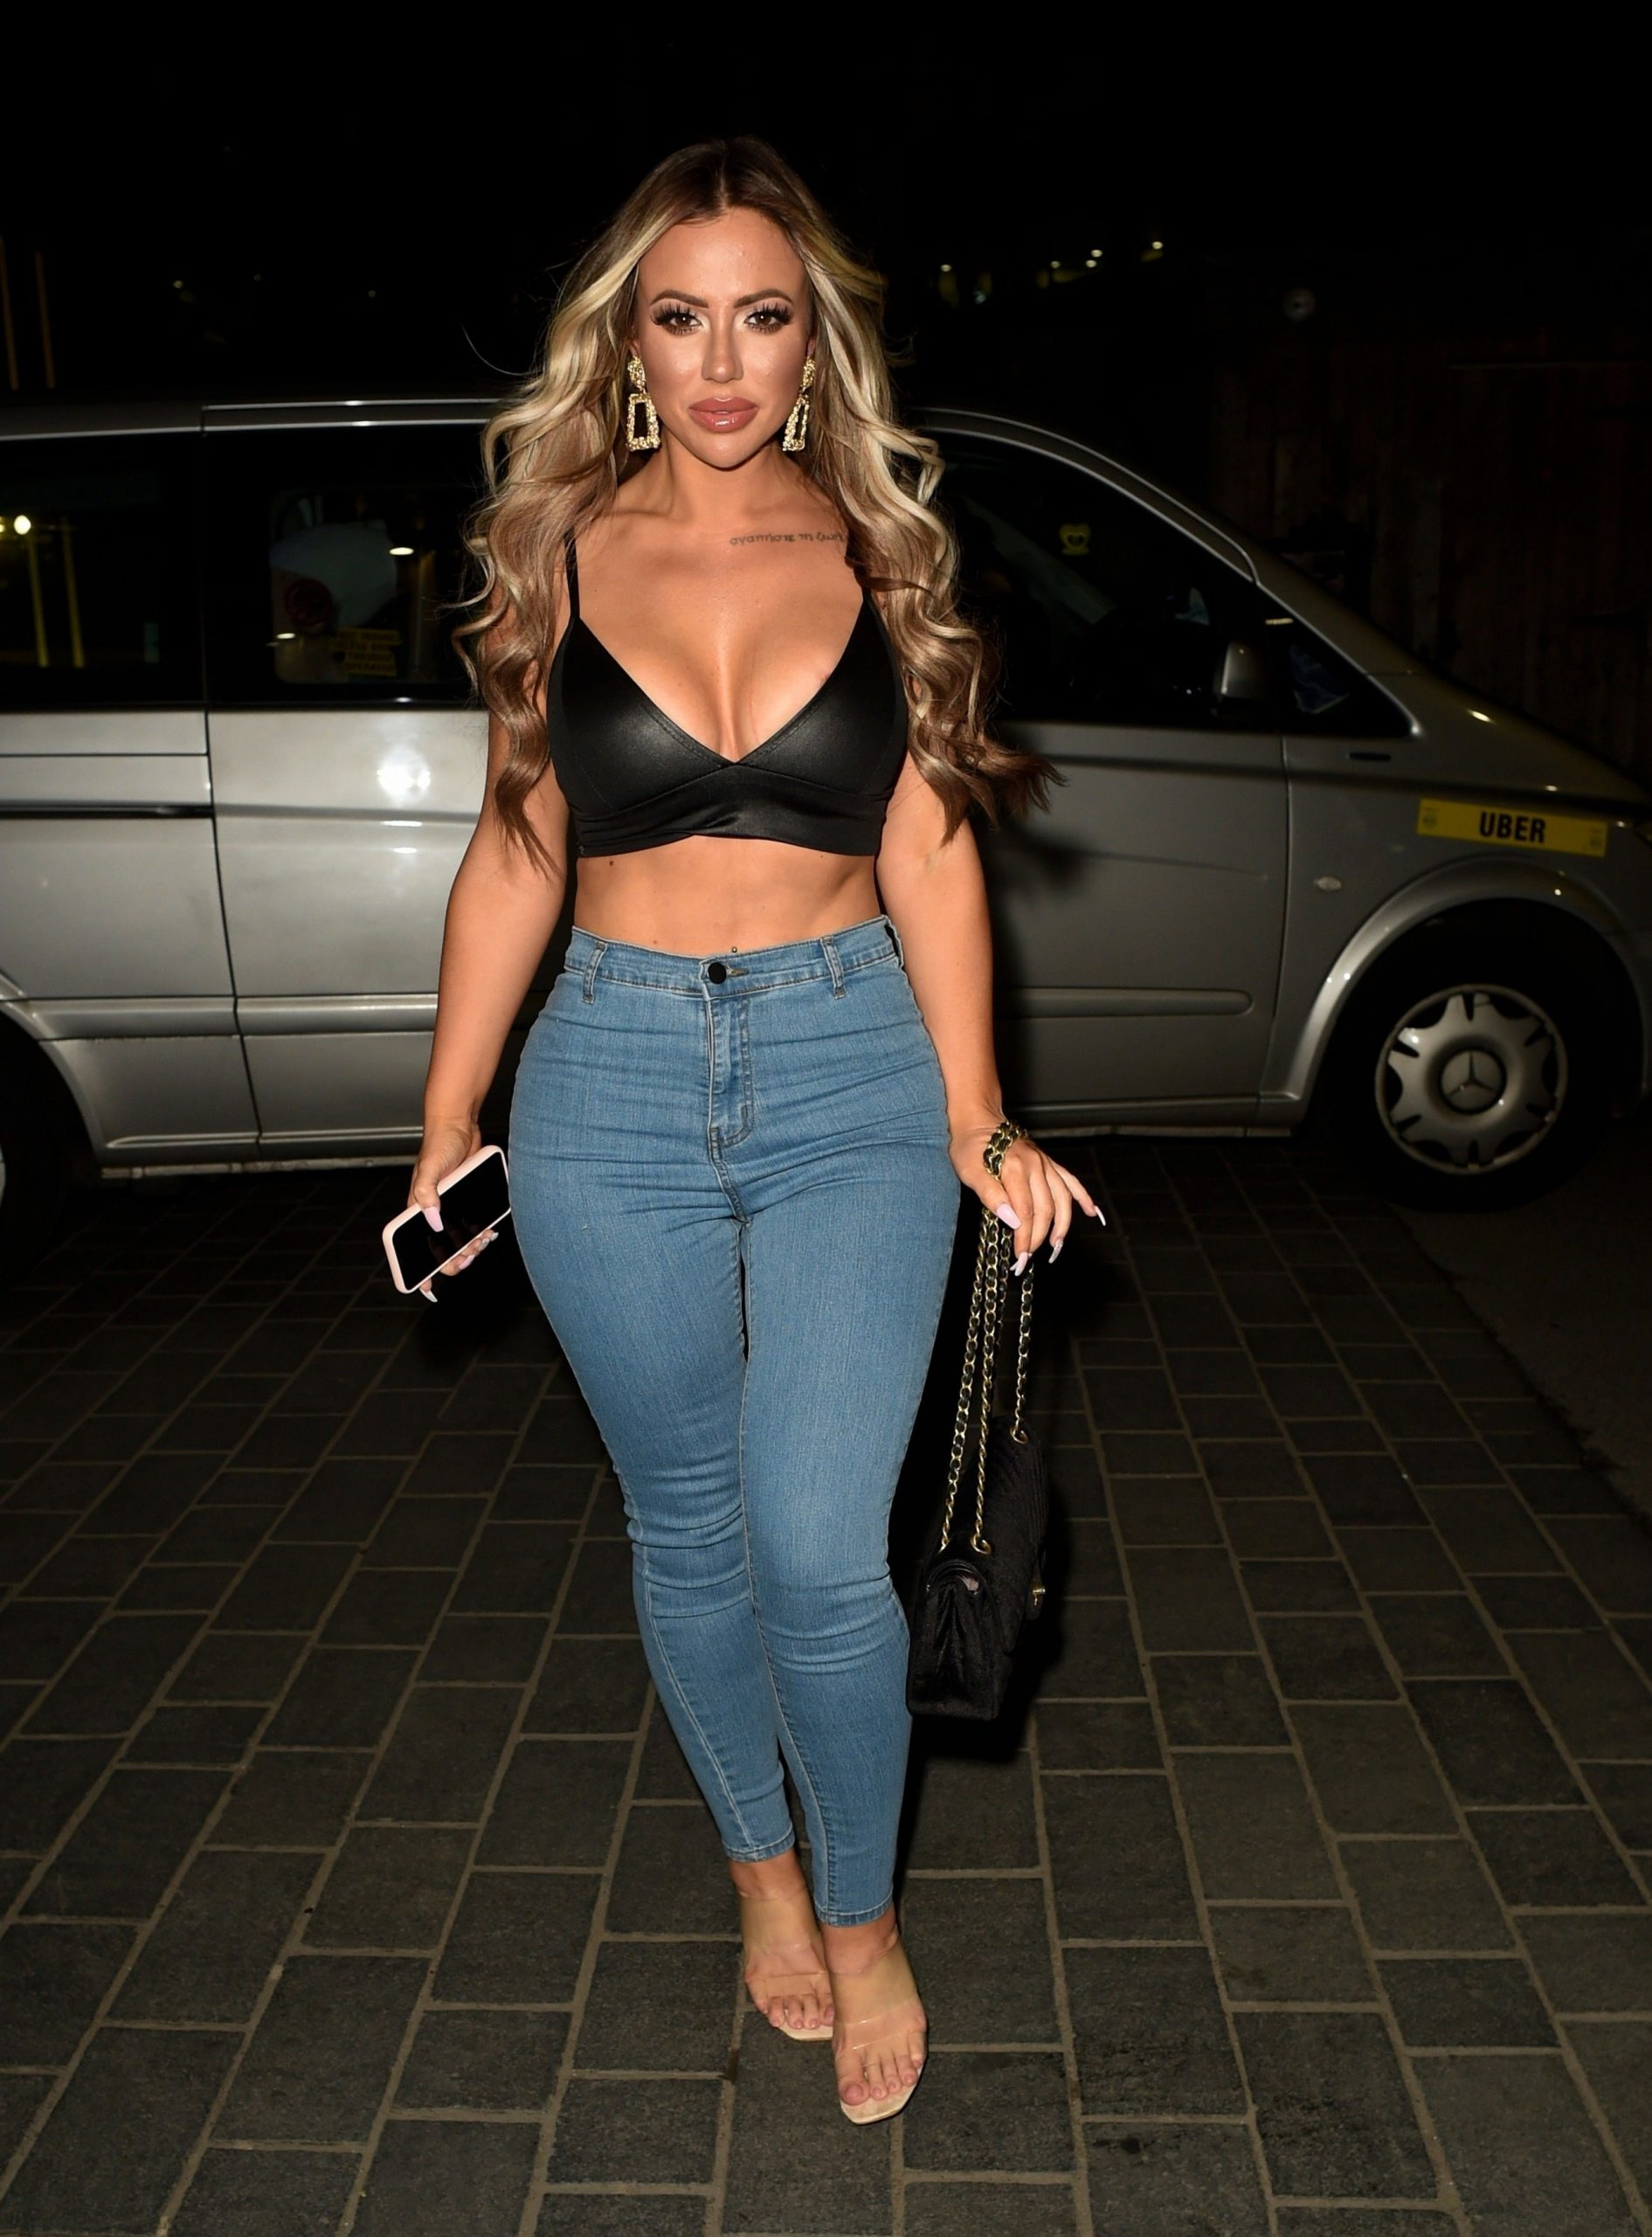 Holly Hagan Shows Off Her Sexy Figure On A Girls Night Out 0001